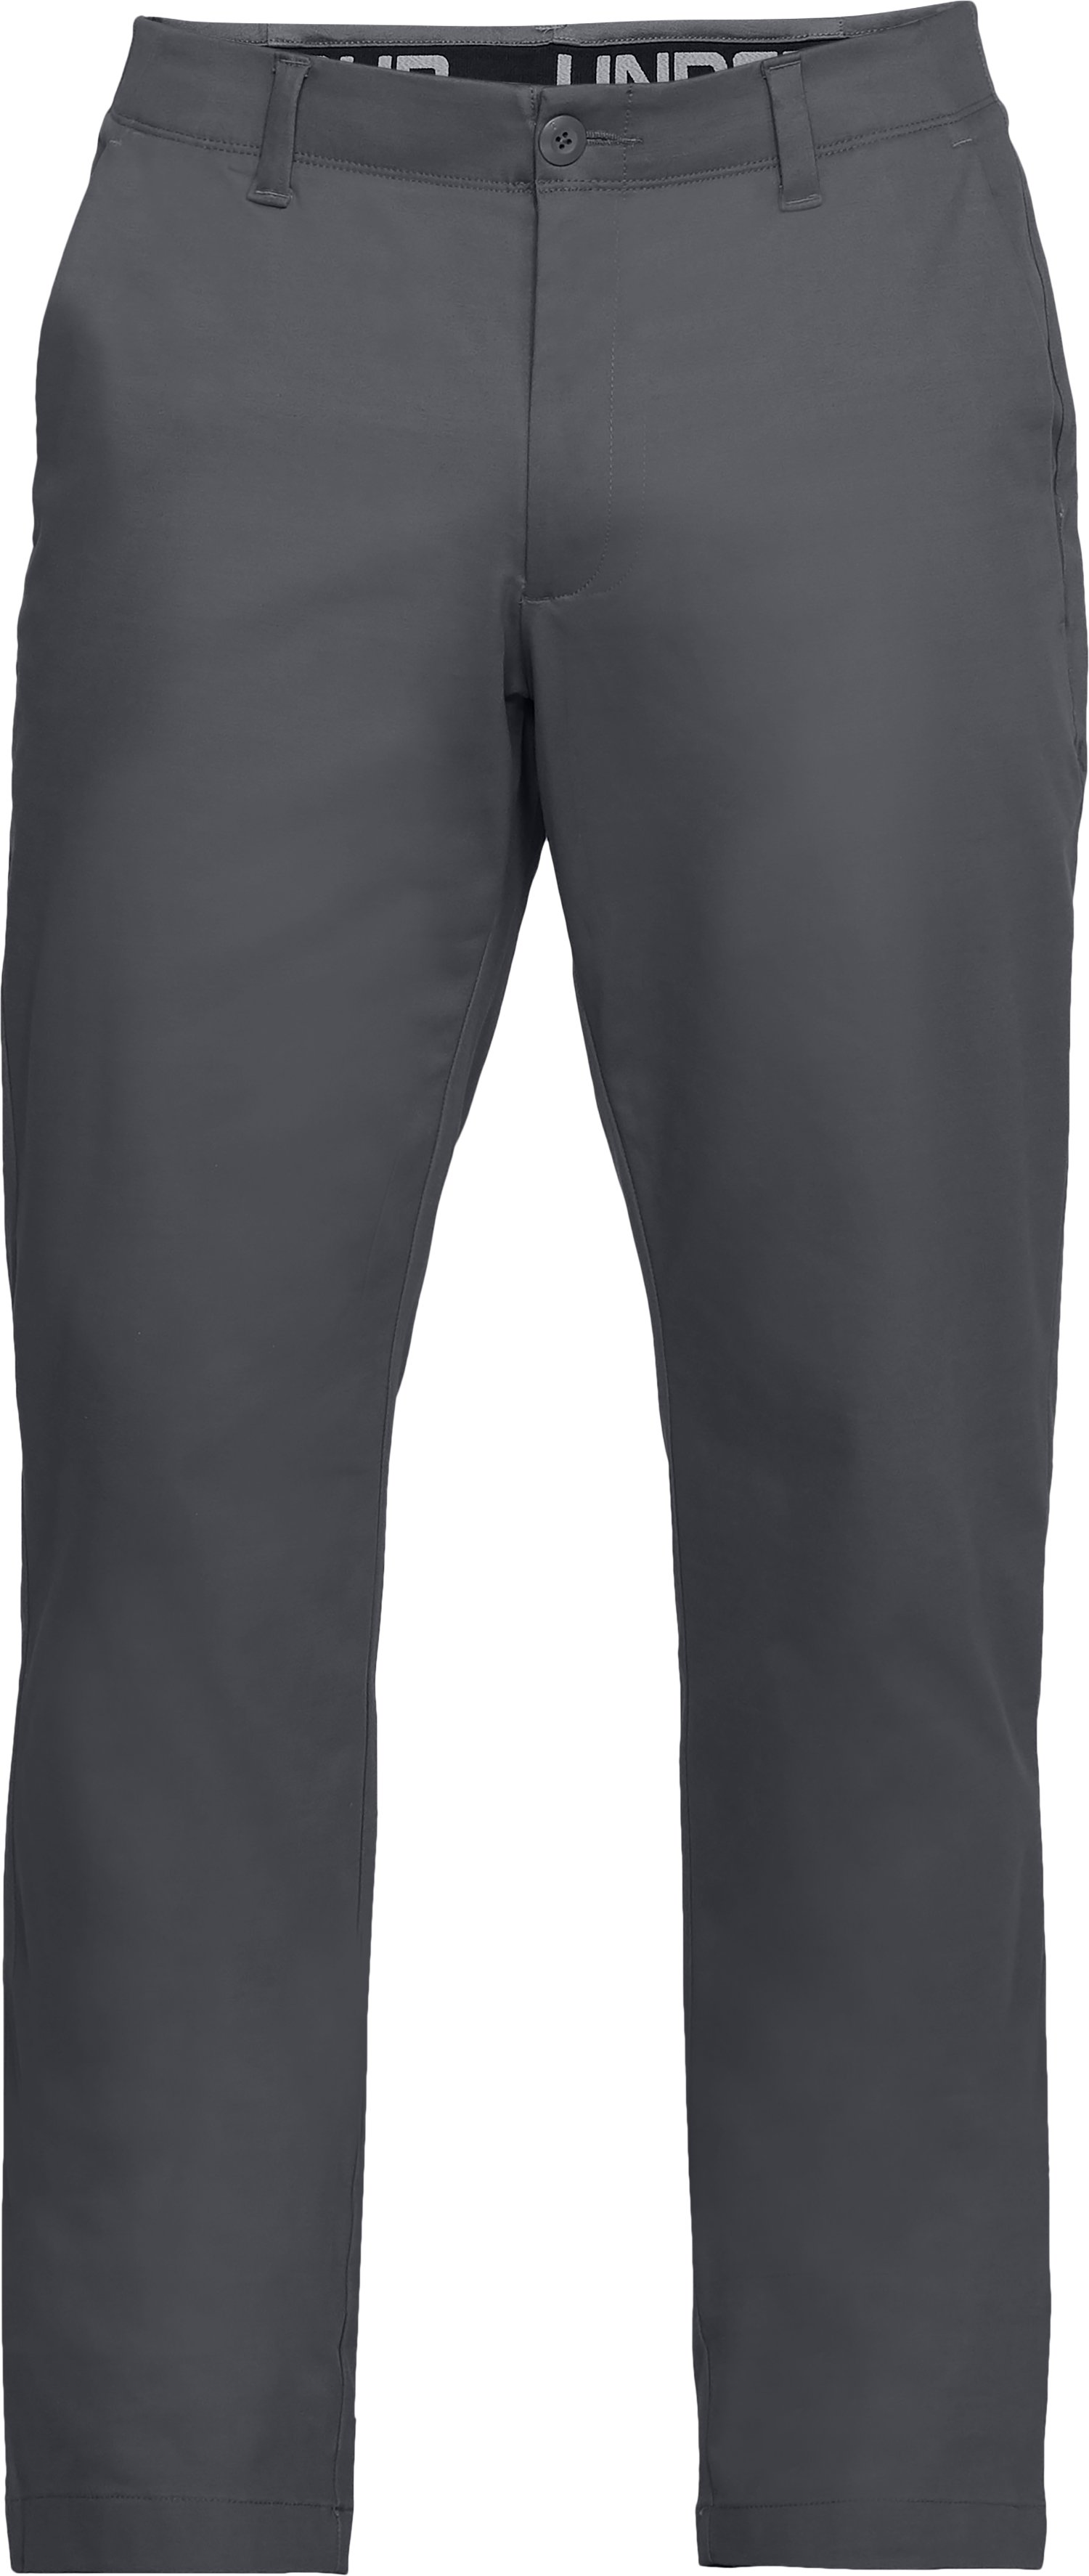 Men's UA Showdown Chino Pants, RHINO GRAY, undefined